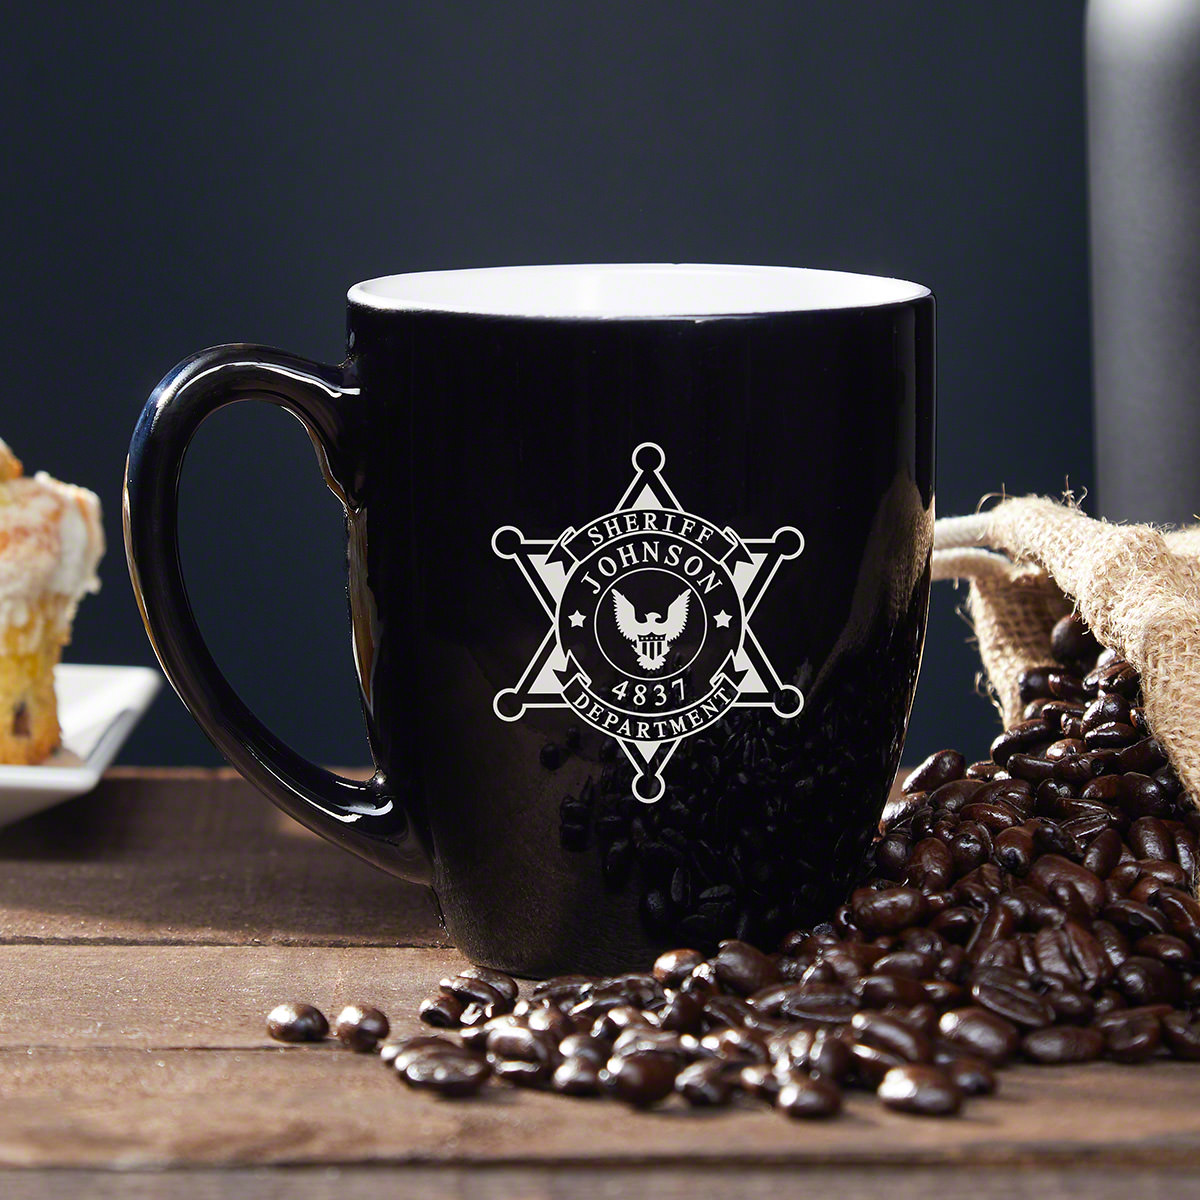 Members of the police force are extremely hard-working individuals, especially sheriffs, so a morning cup of joe is essential. This custom coffee mug is an amazing sheriff gift that any sheriff will love. This sleek black mug has a sheriff badge along wit #mug